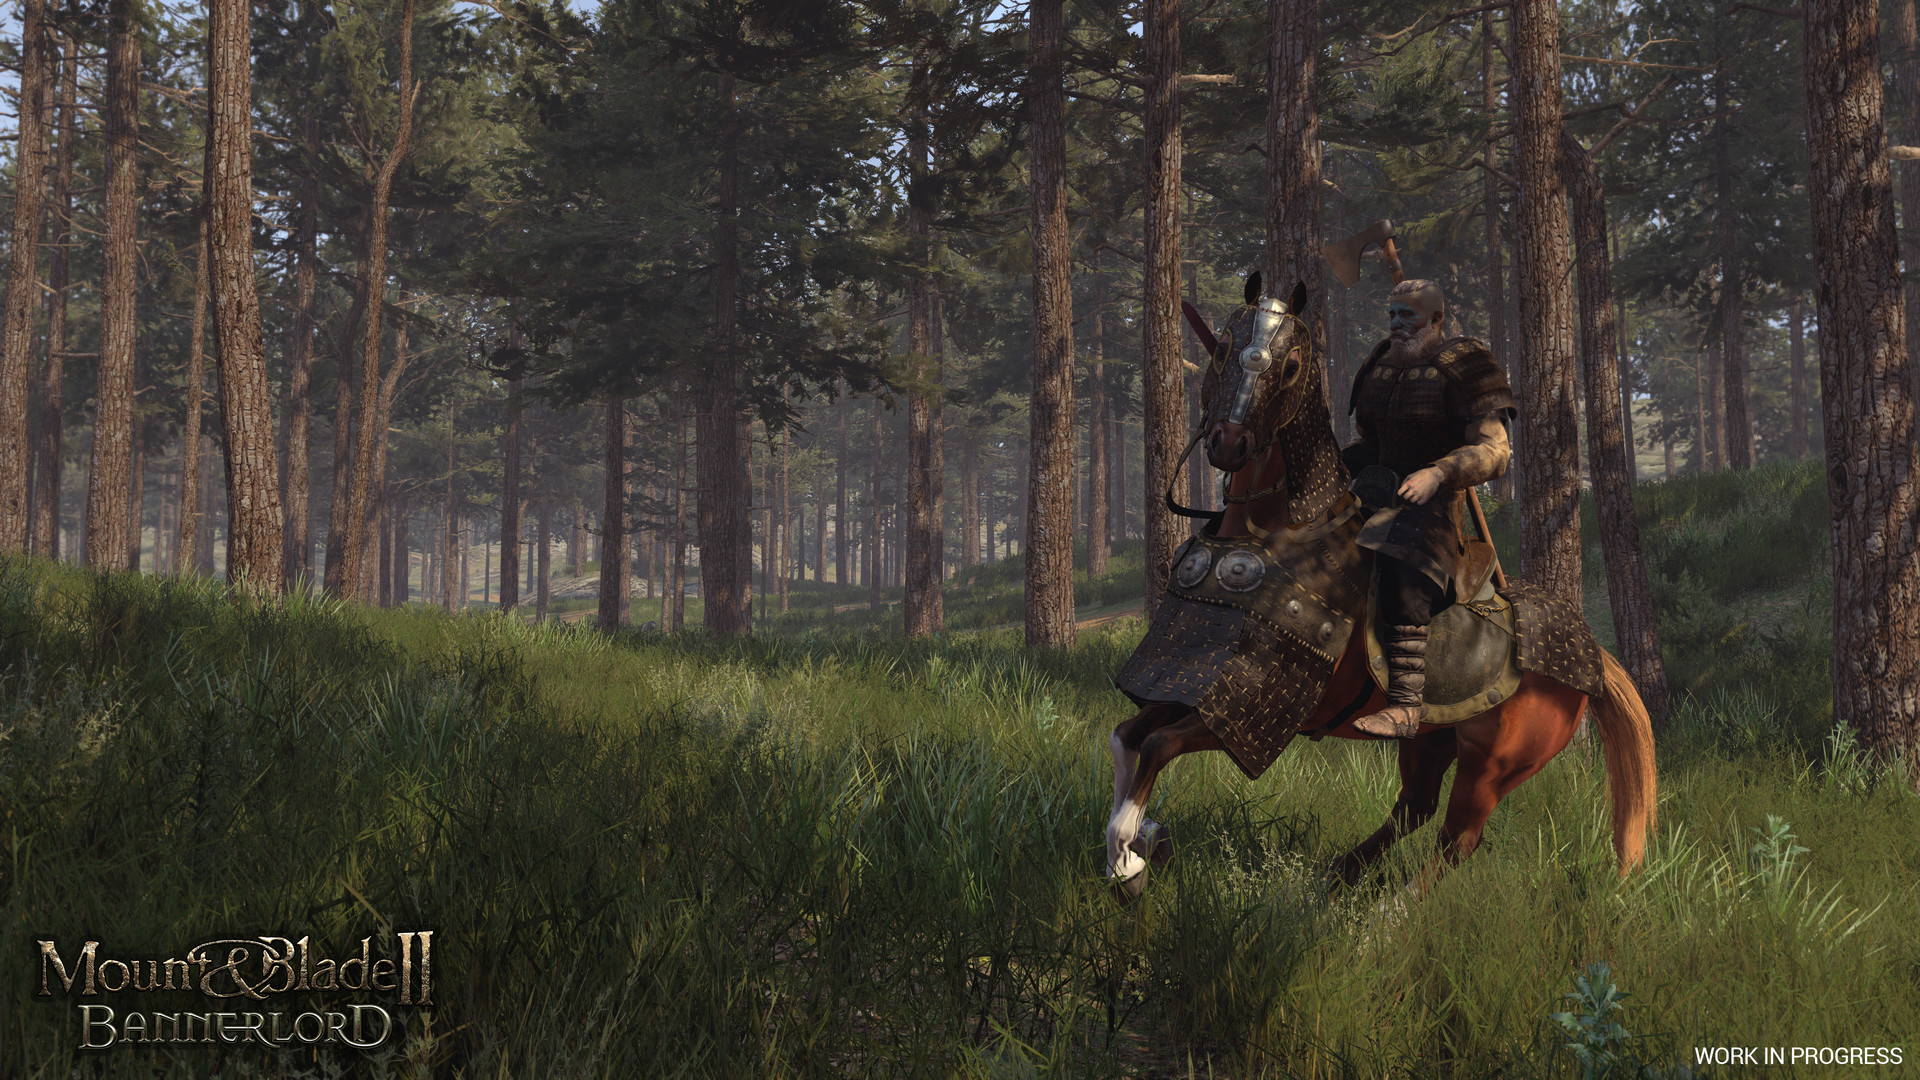 Mount Blade Ii Bannerlord En Steam